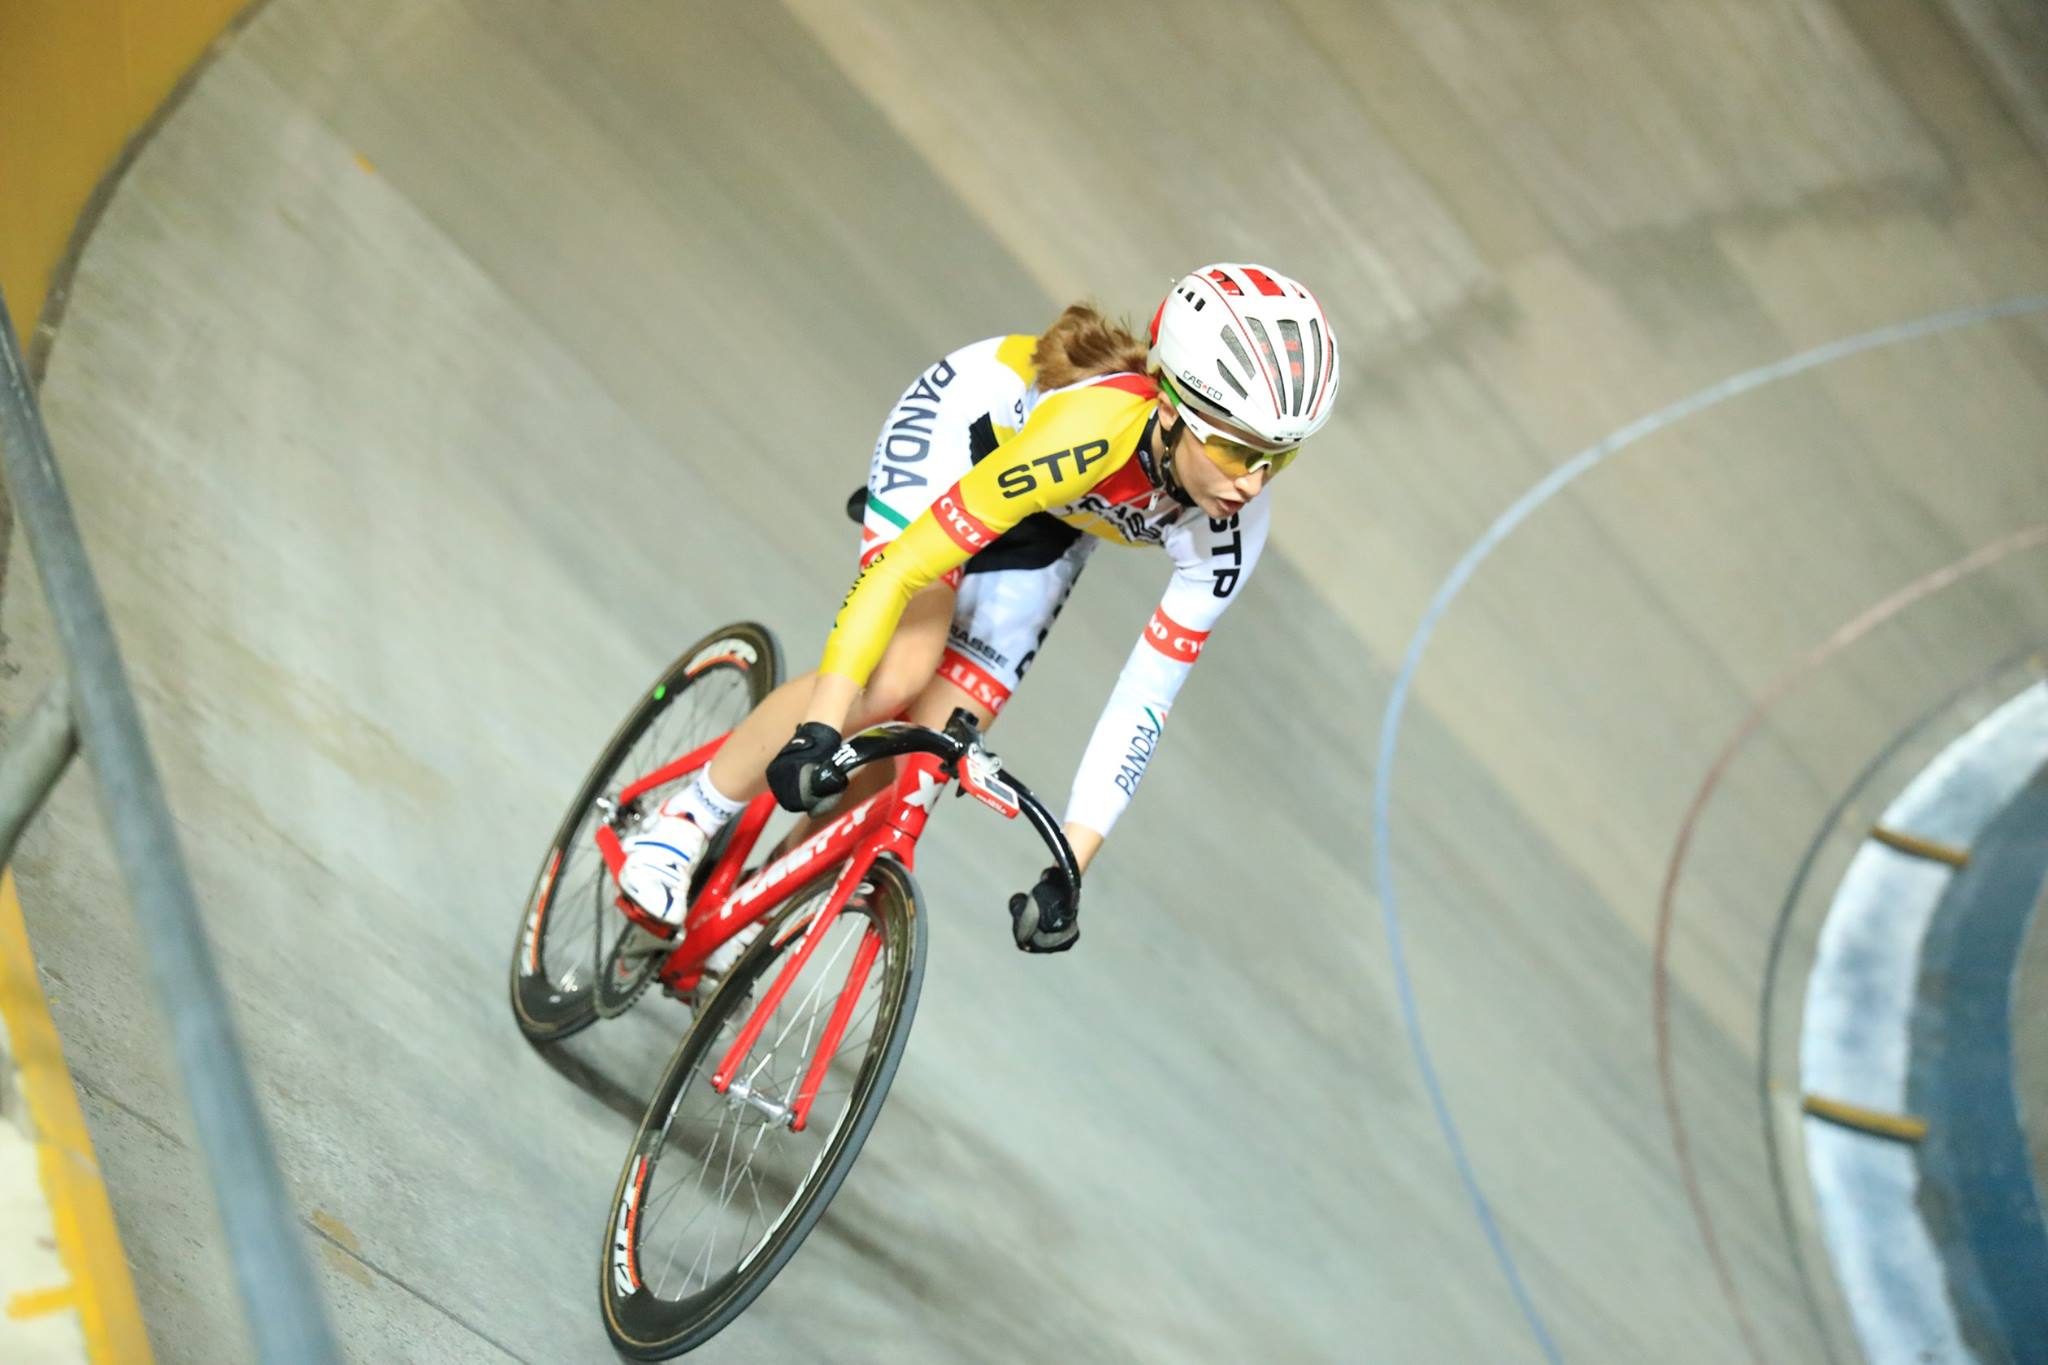 Jennifer Abbot (pictured) and Danielle van Niekerk etched their name on the trophy of the inaugural Women's class at the SA National Madison Championships, winning with 20 points at the Bellville Velodrome on Saturday 17 December 2016. Photo credit: Owen Lloyd